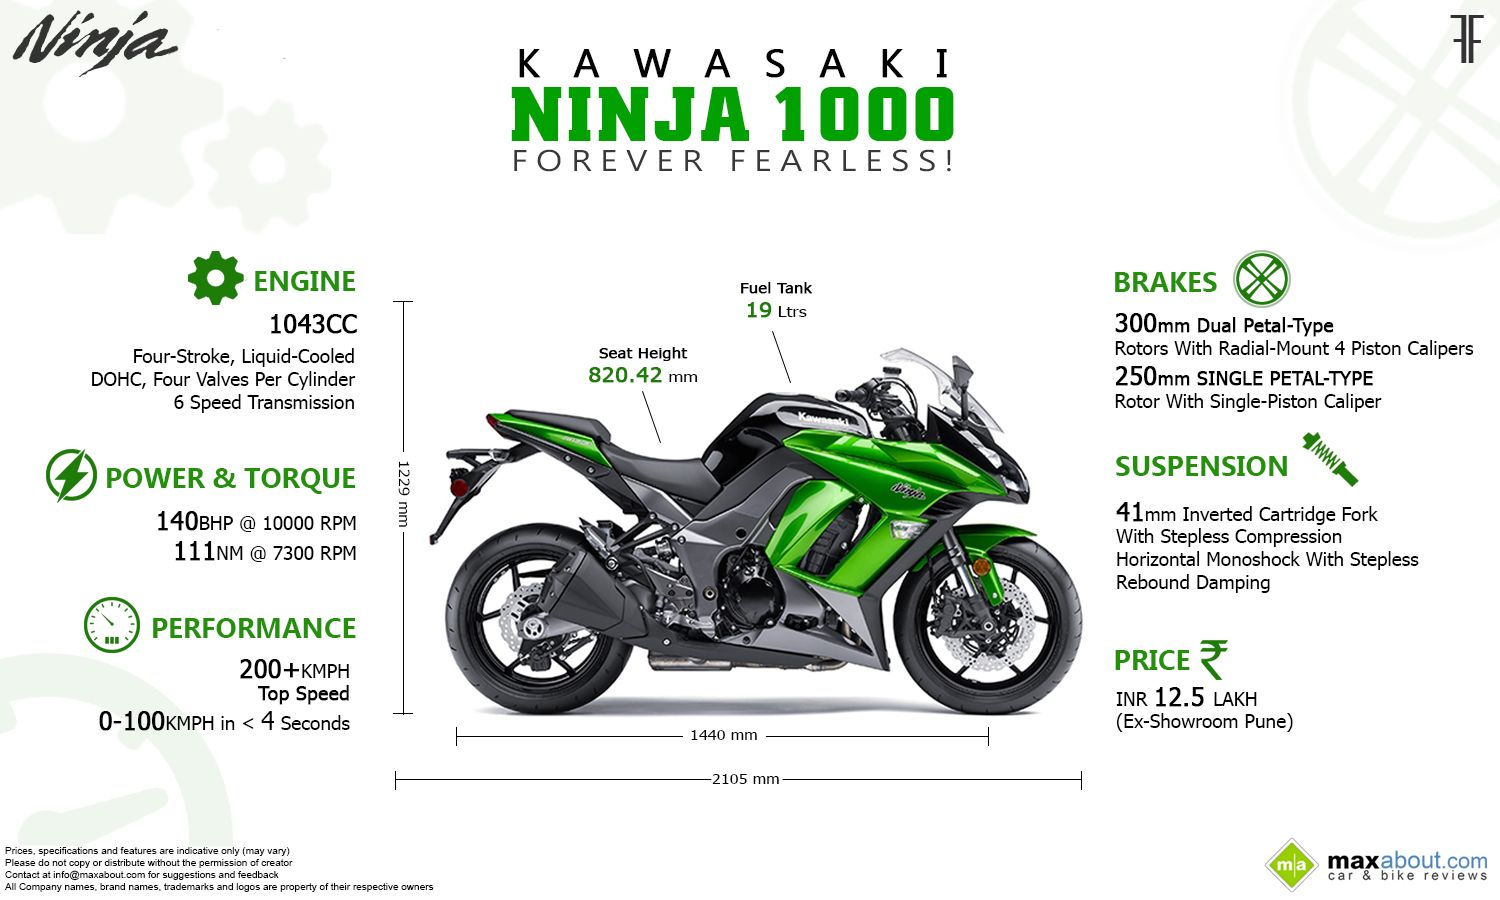 2014 kawasaki ninja 1000 specifications and price maxabout autos 2014 kawasaki ninja 1000 specifications and price fandeluxe